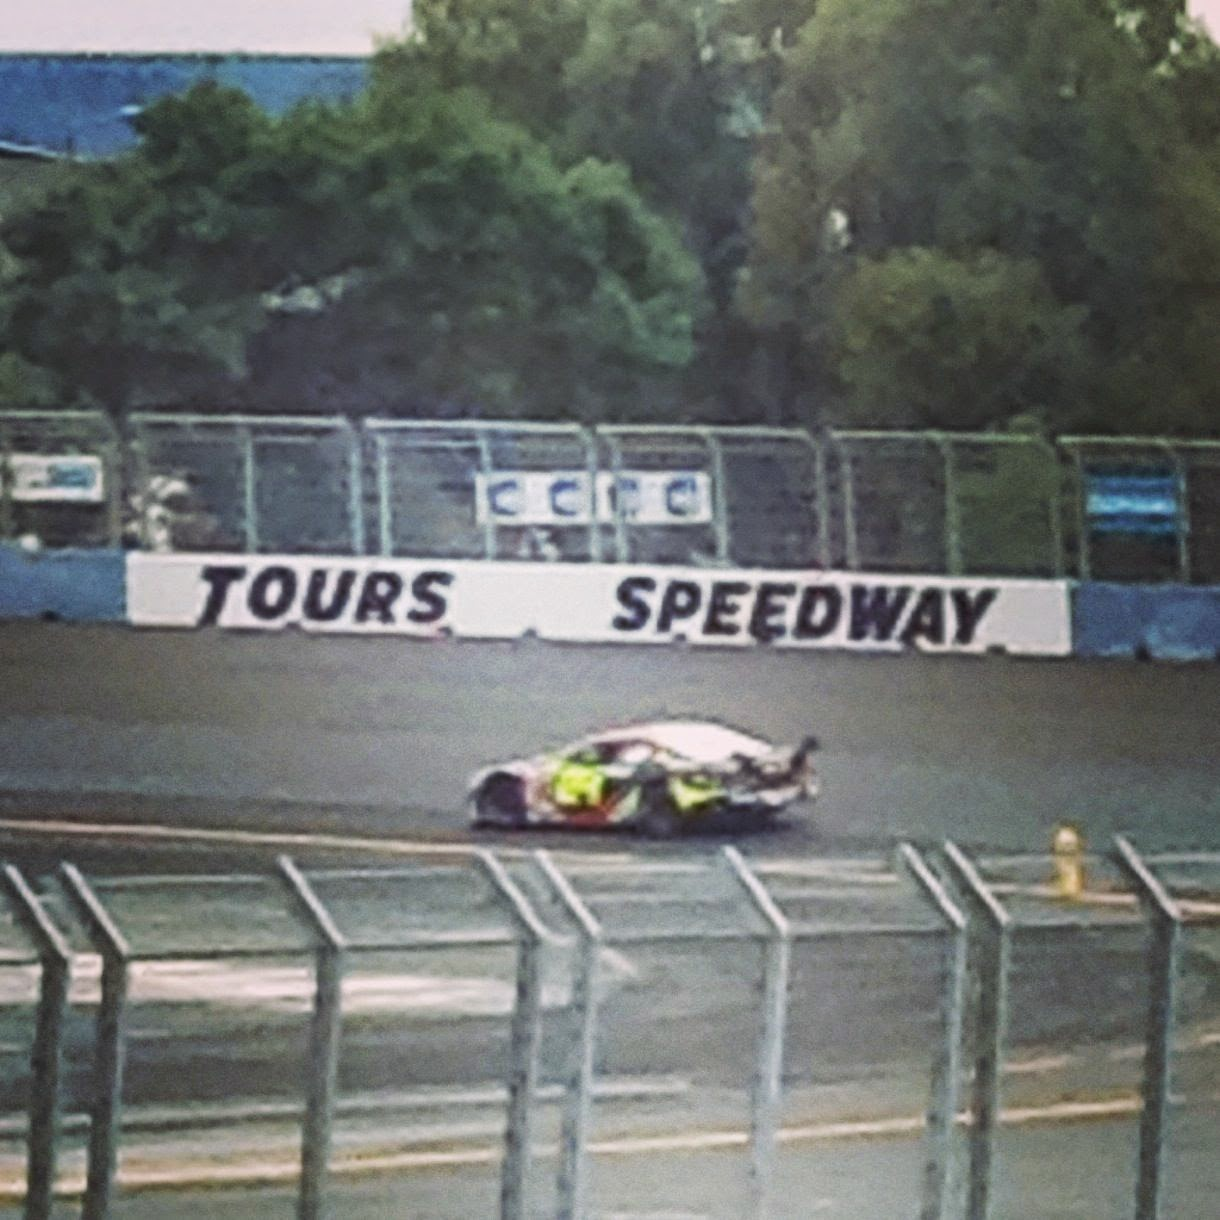 LACN - voyage - tours - nascar - tours speedway - ovale